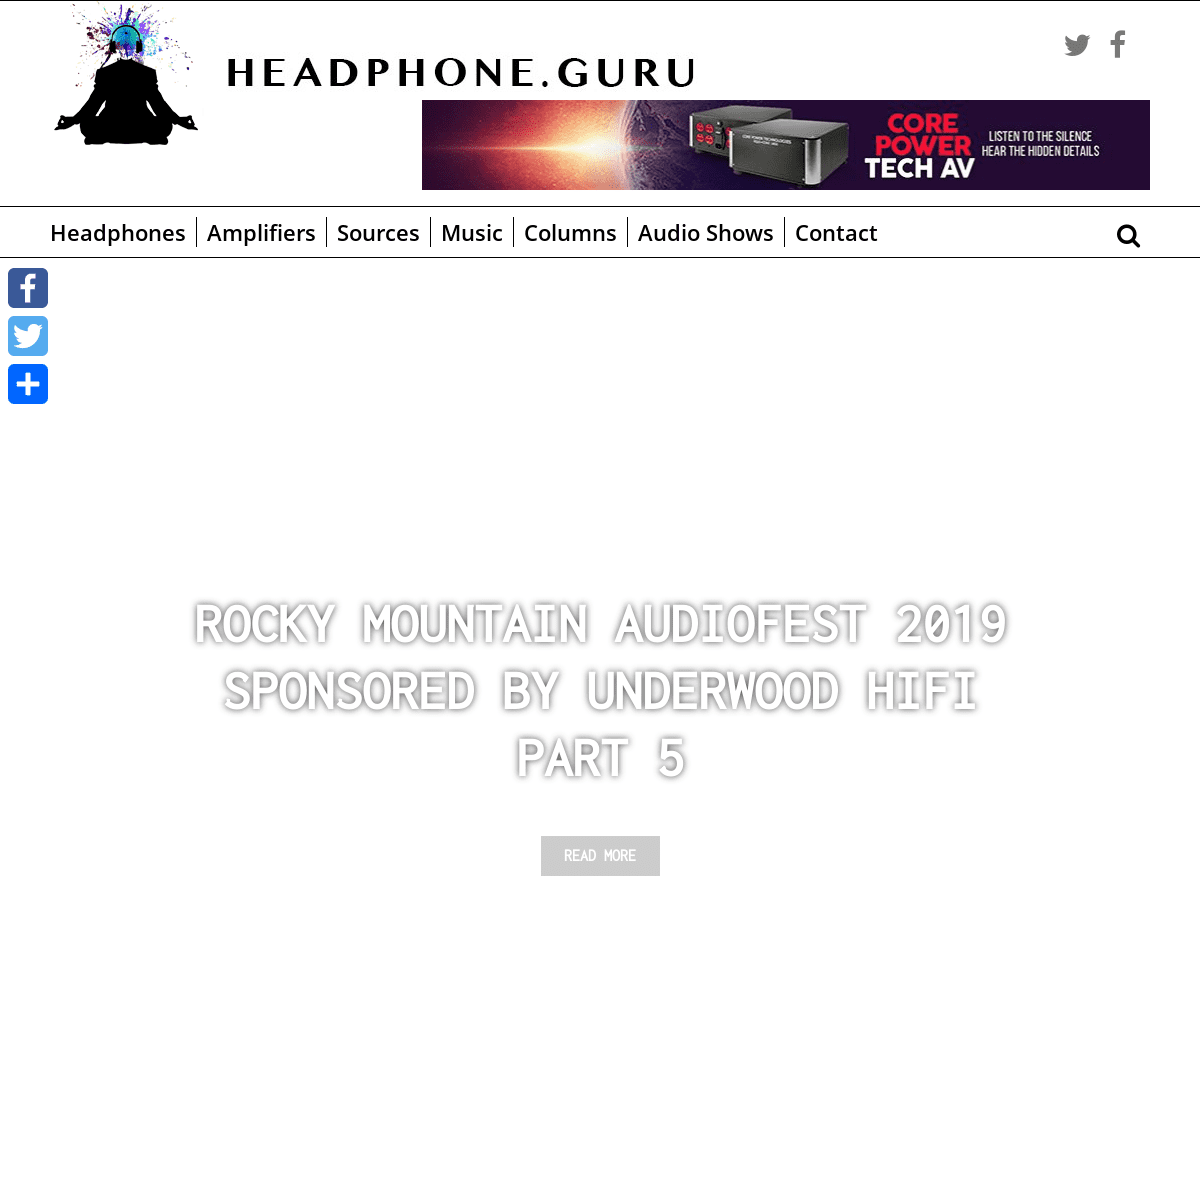 ArchiveBay.com - headphone.guru - Home Page - Headphone Guru